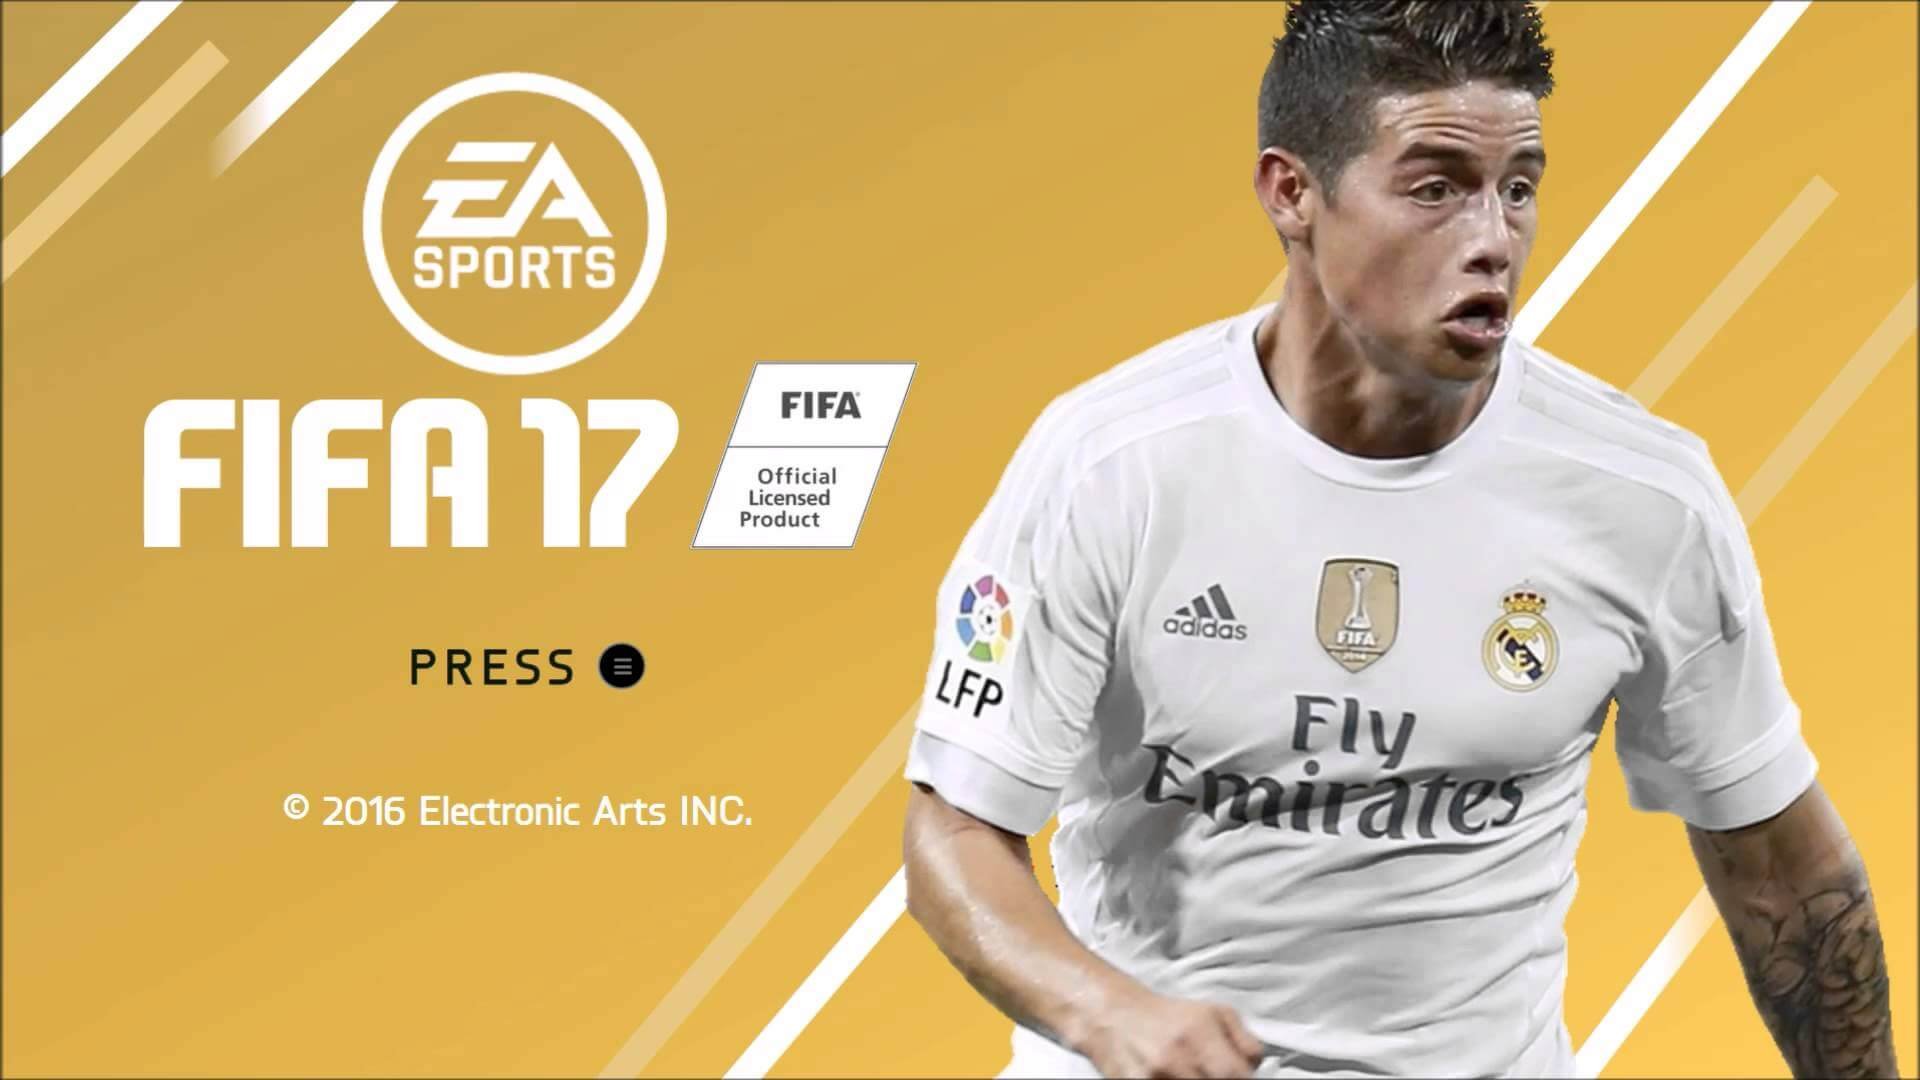 FIFA 17 Download Torrent Free + Online Crack